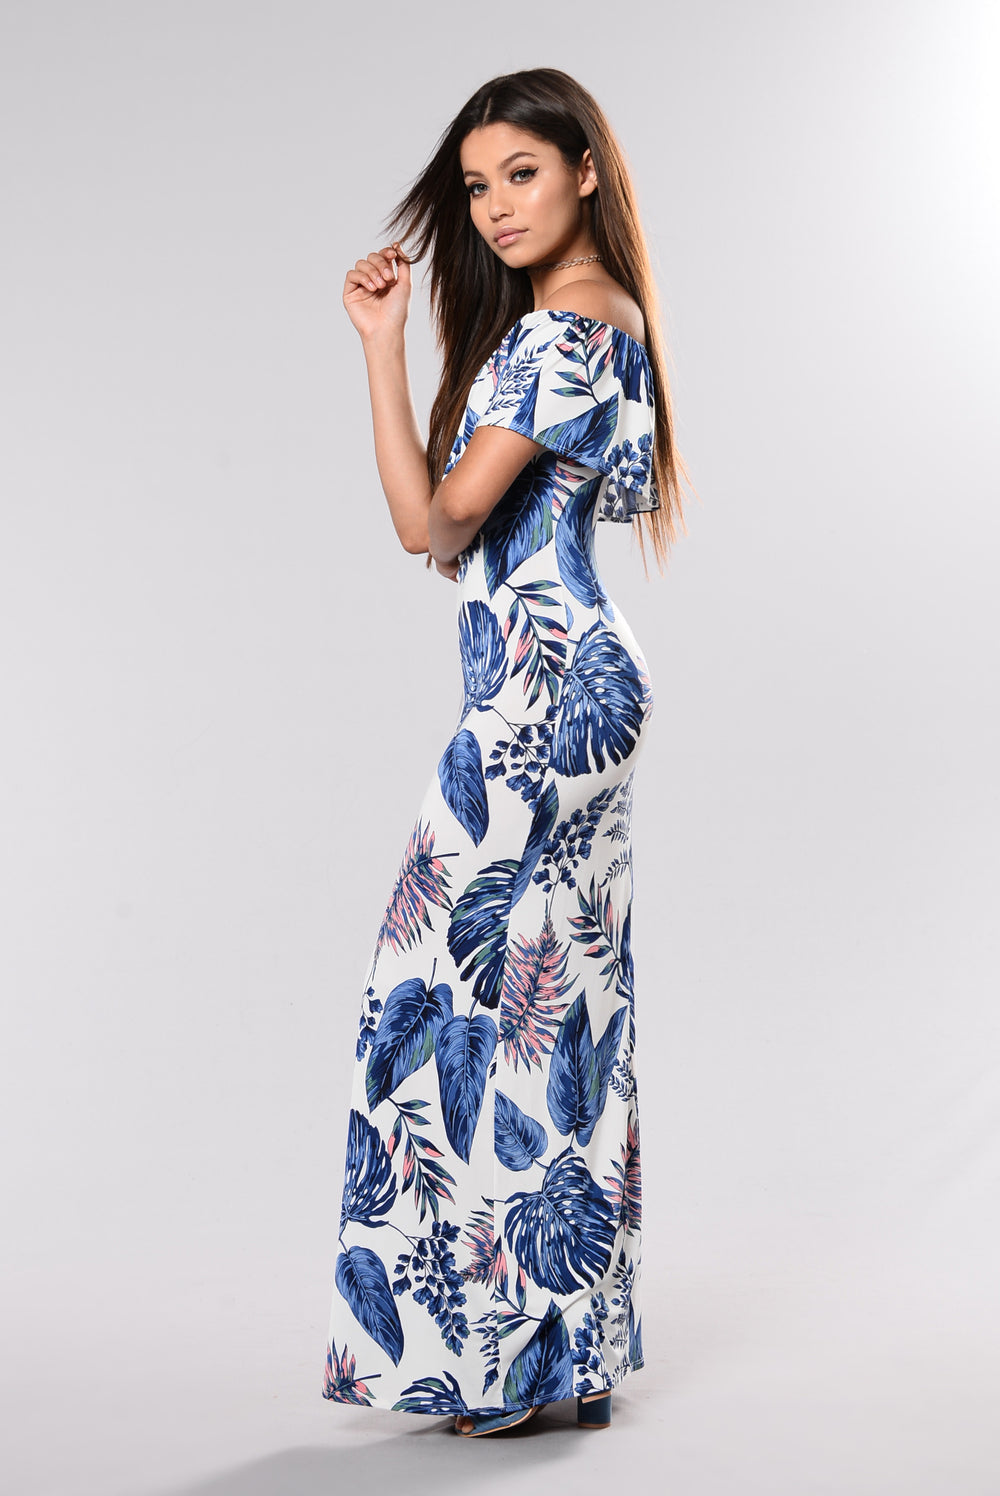 I Love Trouble Dress - Blue Palm